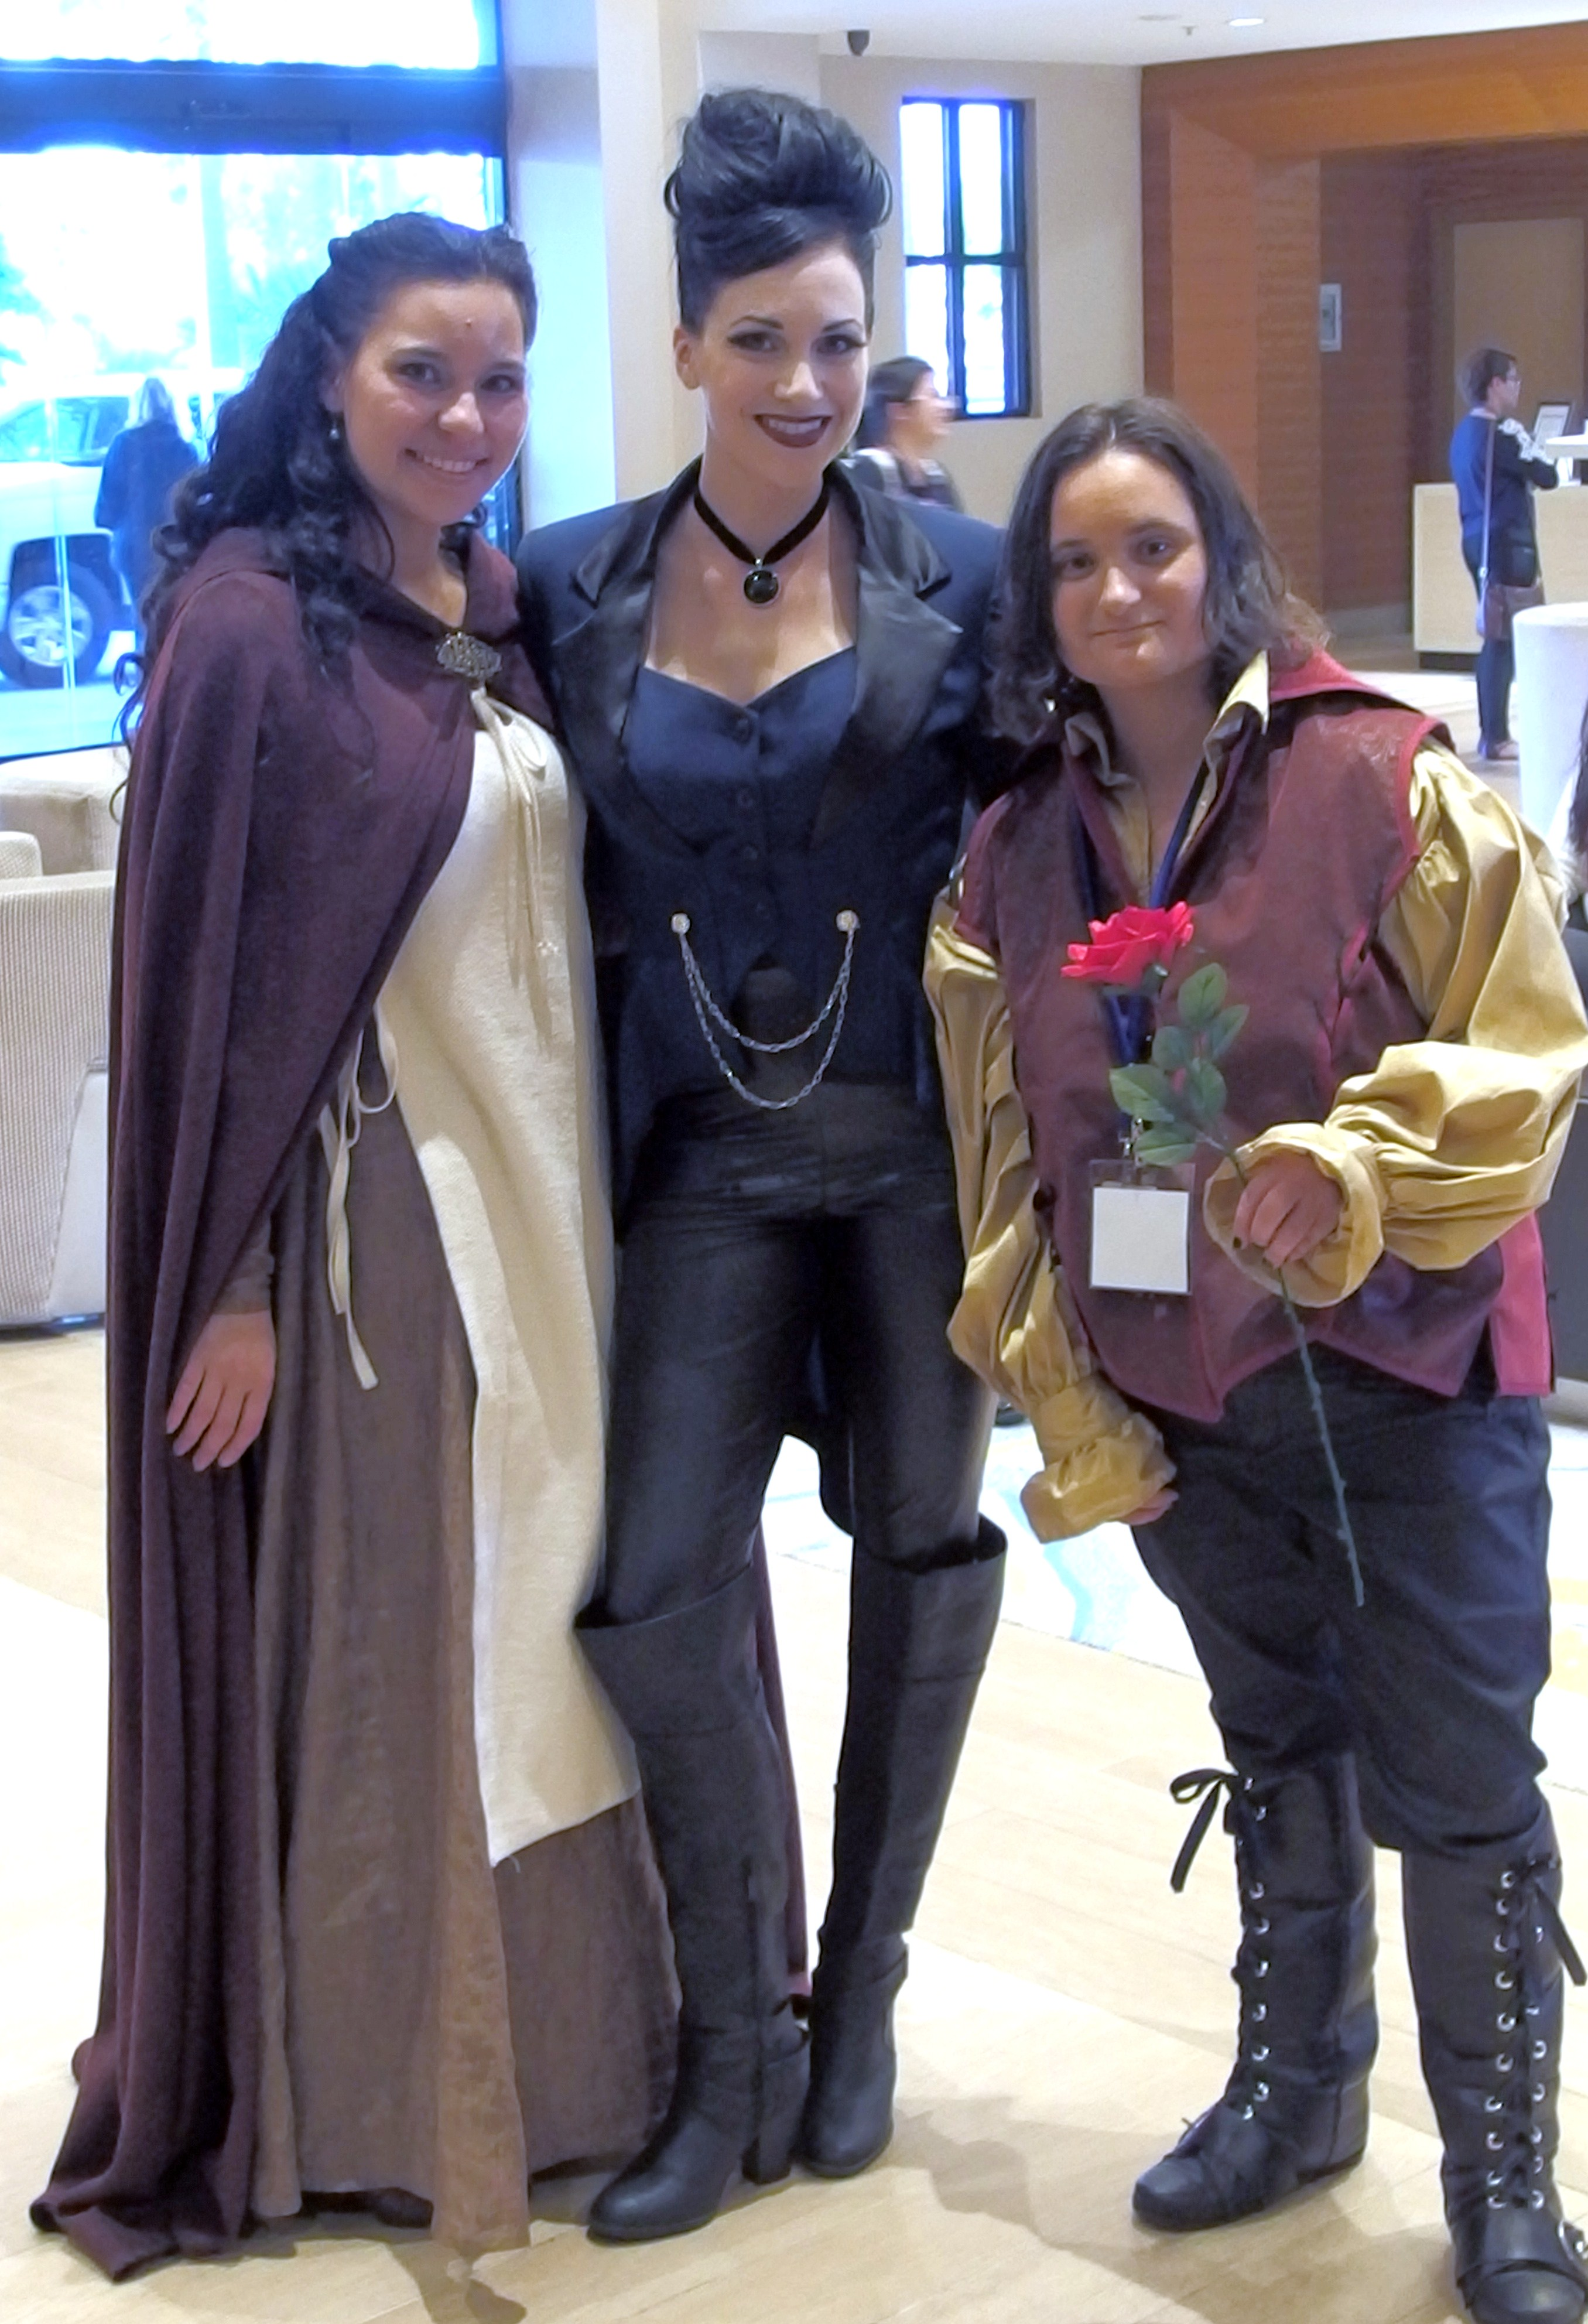 Marian, the Evil Queen and Rumpelstiltskin Cosplayers at Regal Con